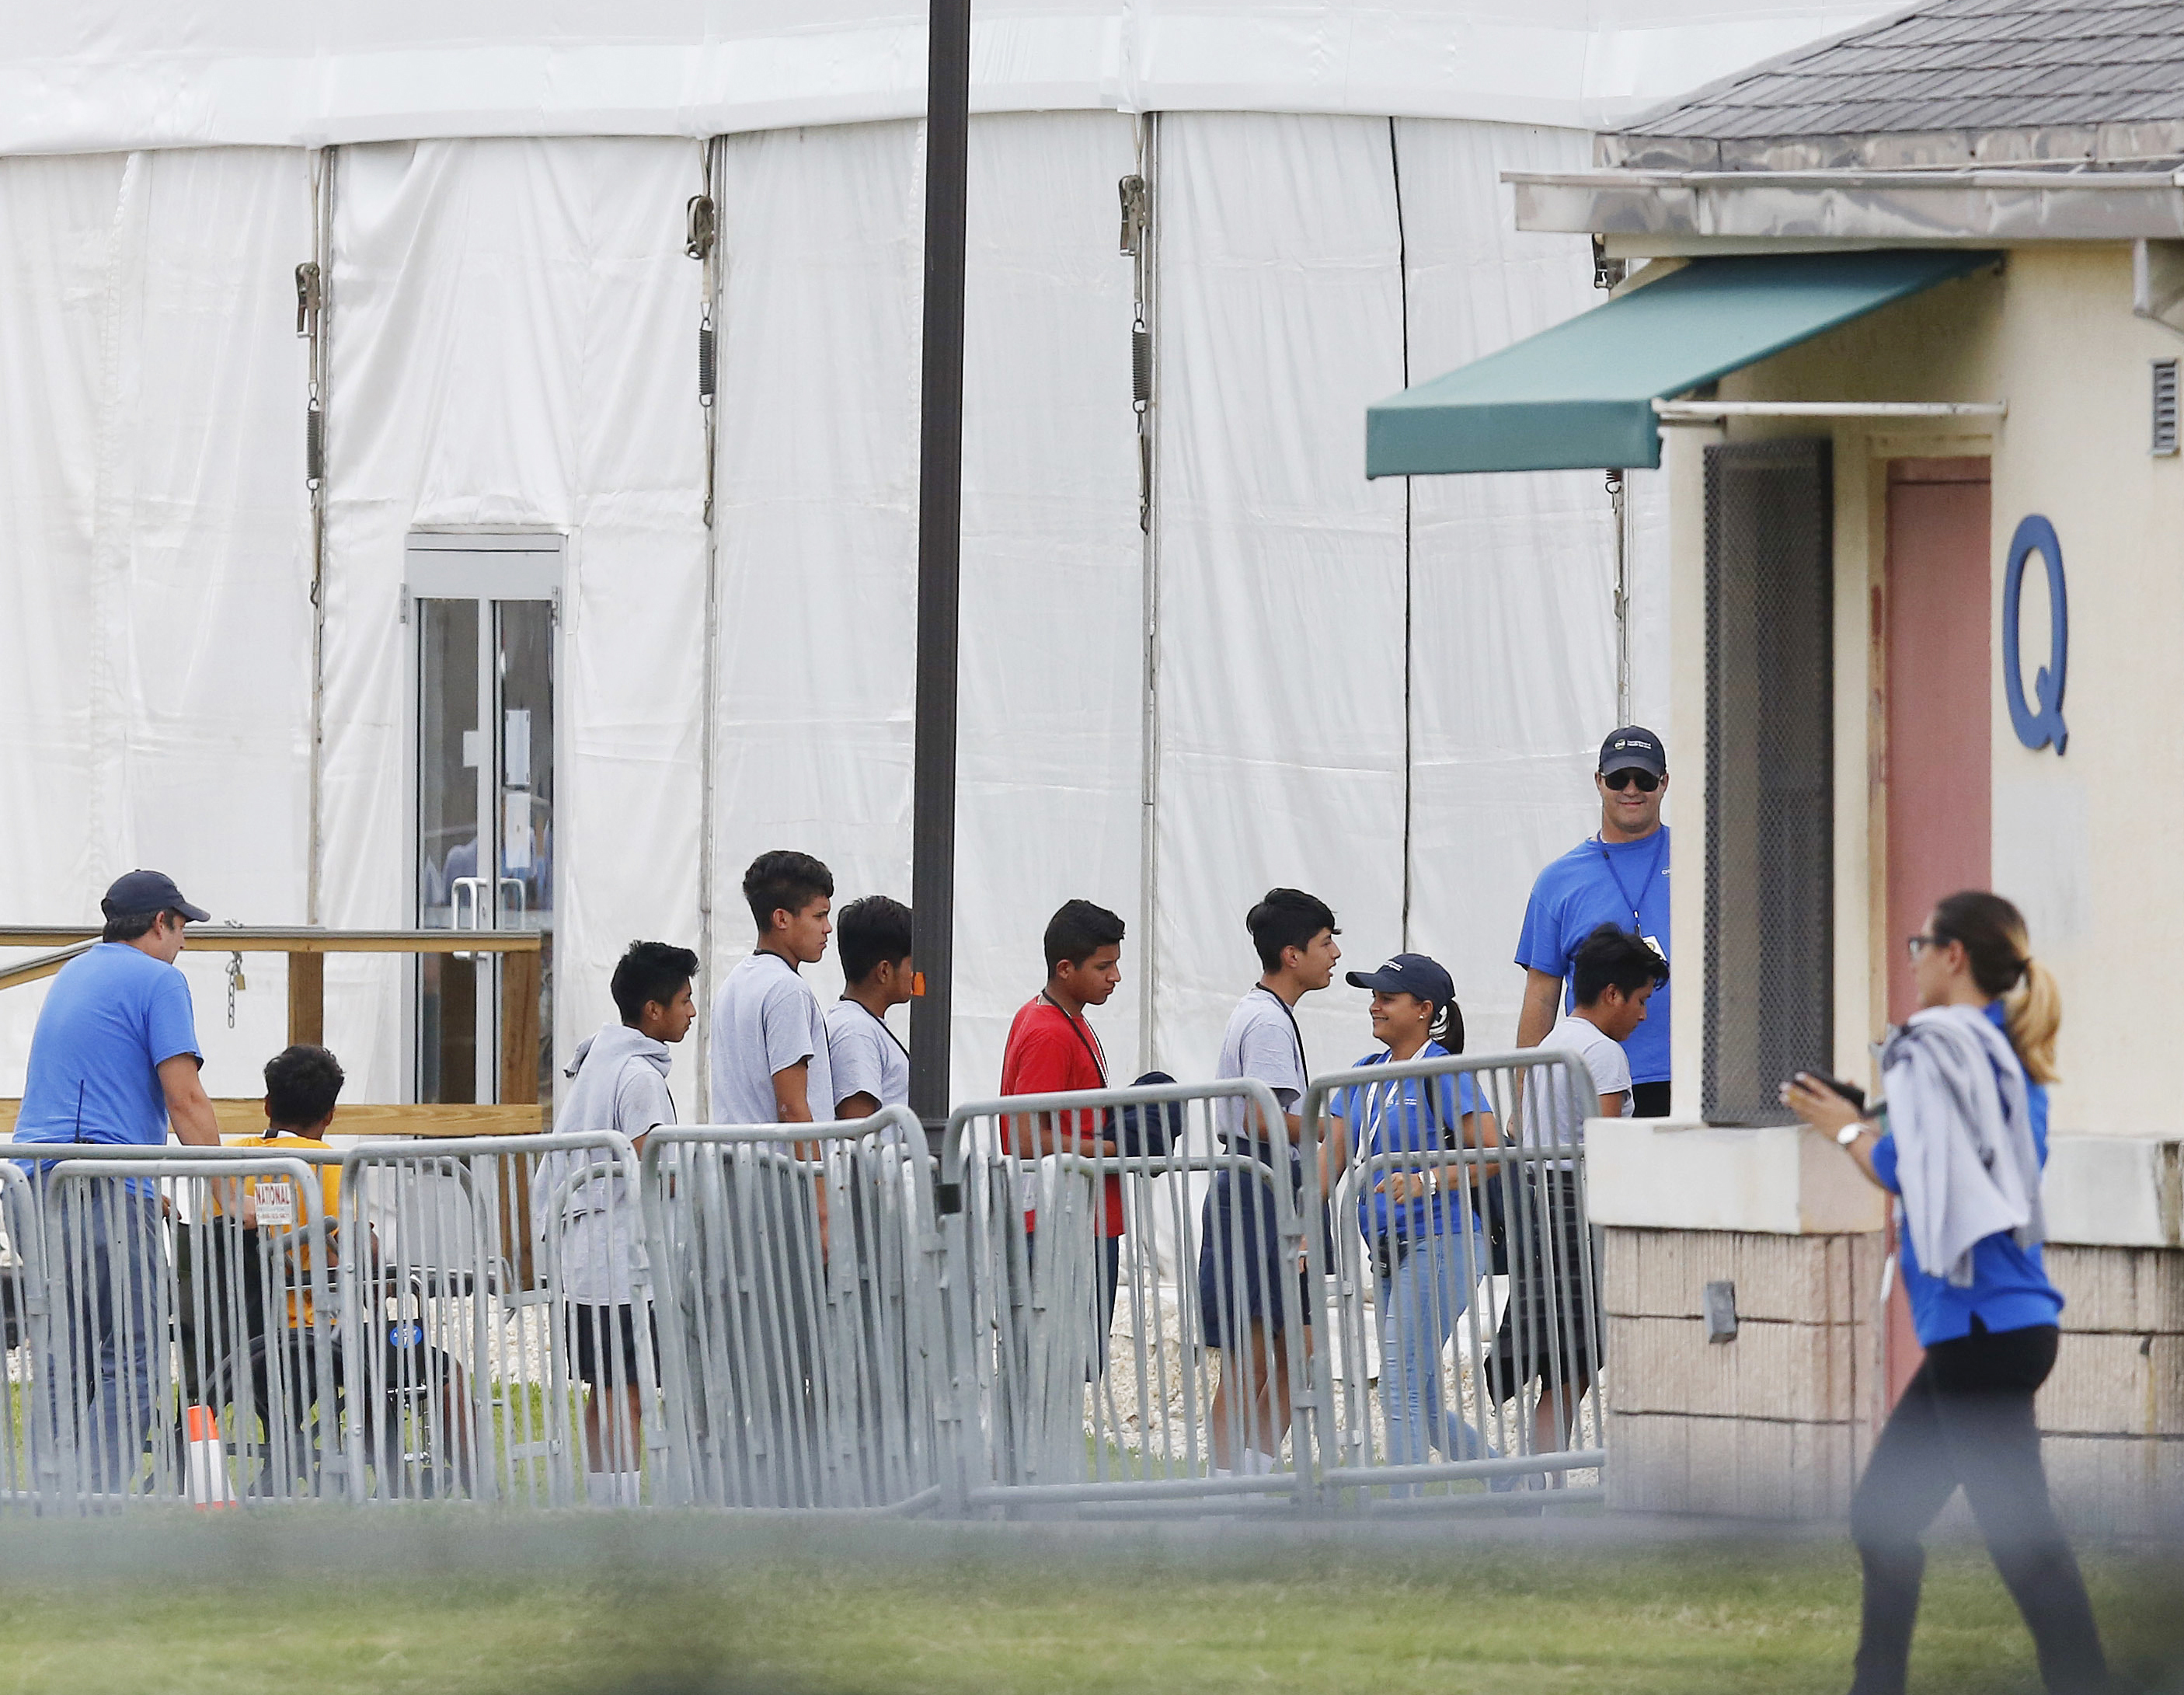 FILE - In this June 20, 2018, file photo, immigrant children walk in a line outside the Homestead Temporary Shelter for Unaccompanied Children, a former Job Corps site that now houses them in Homestead, Florida.